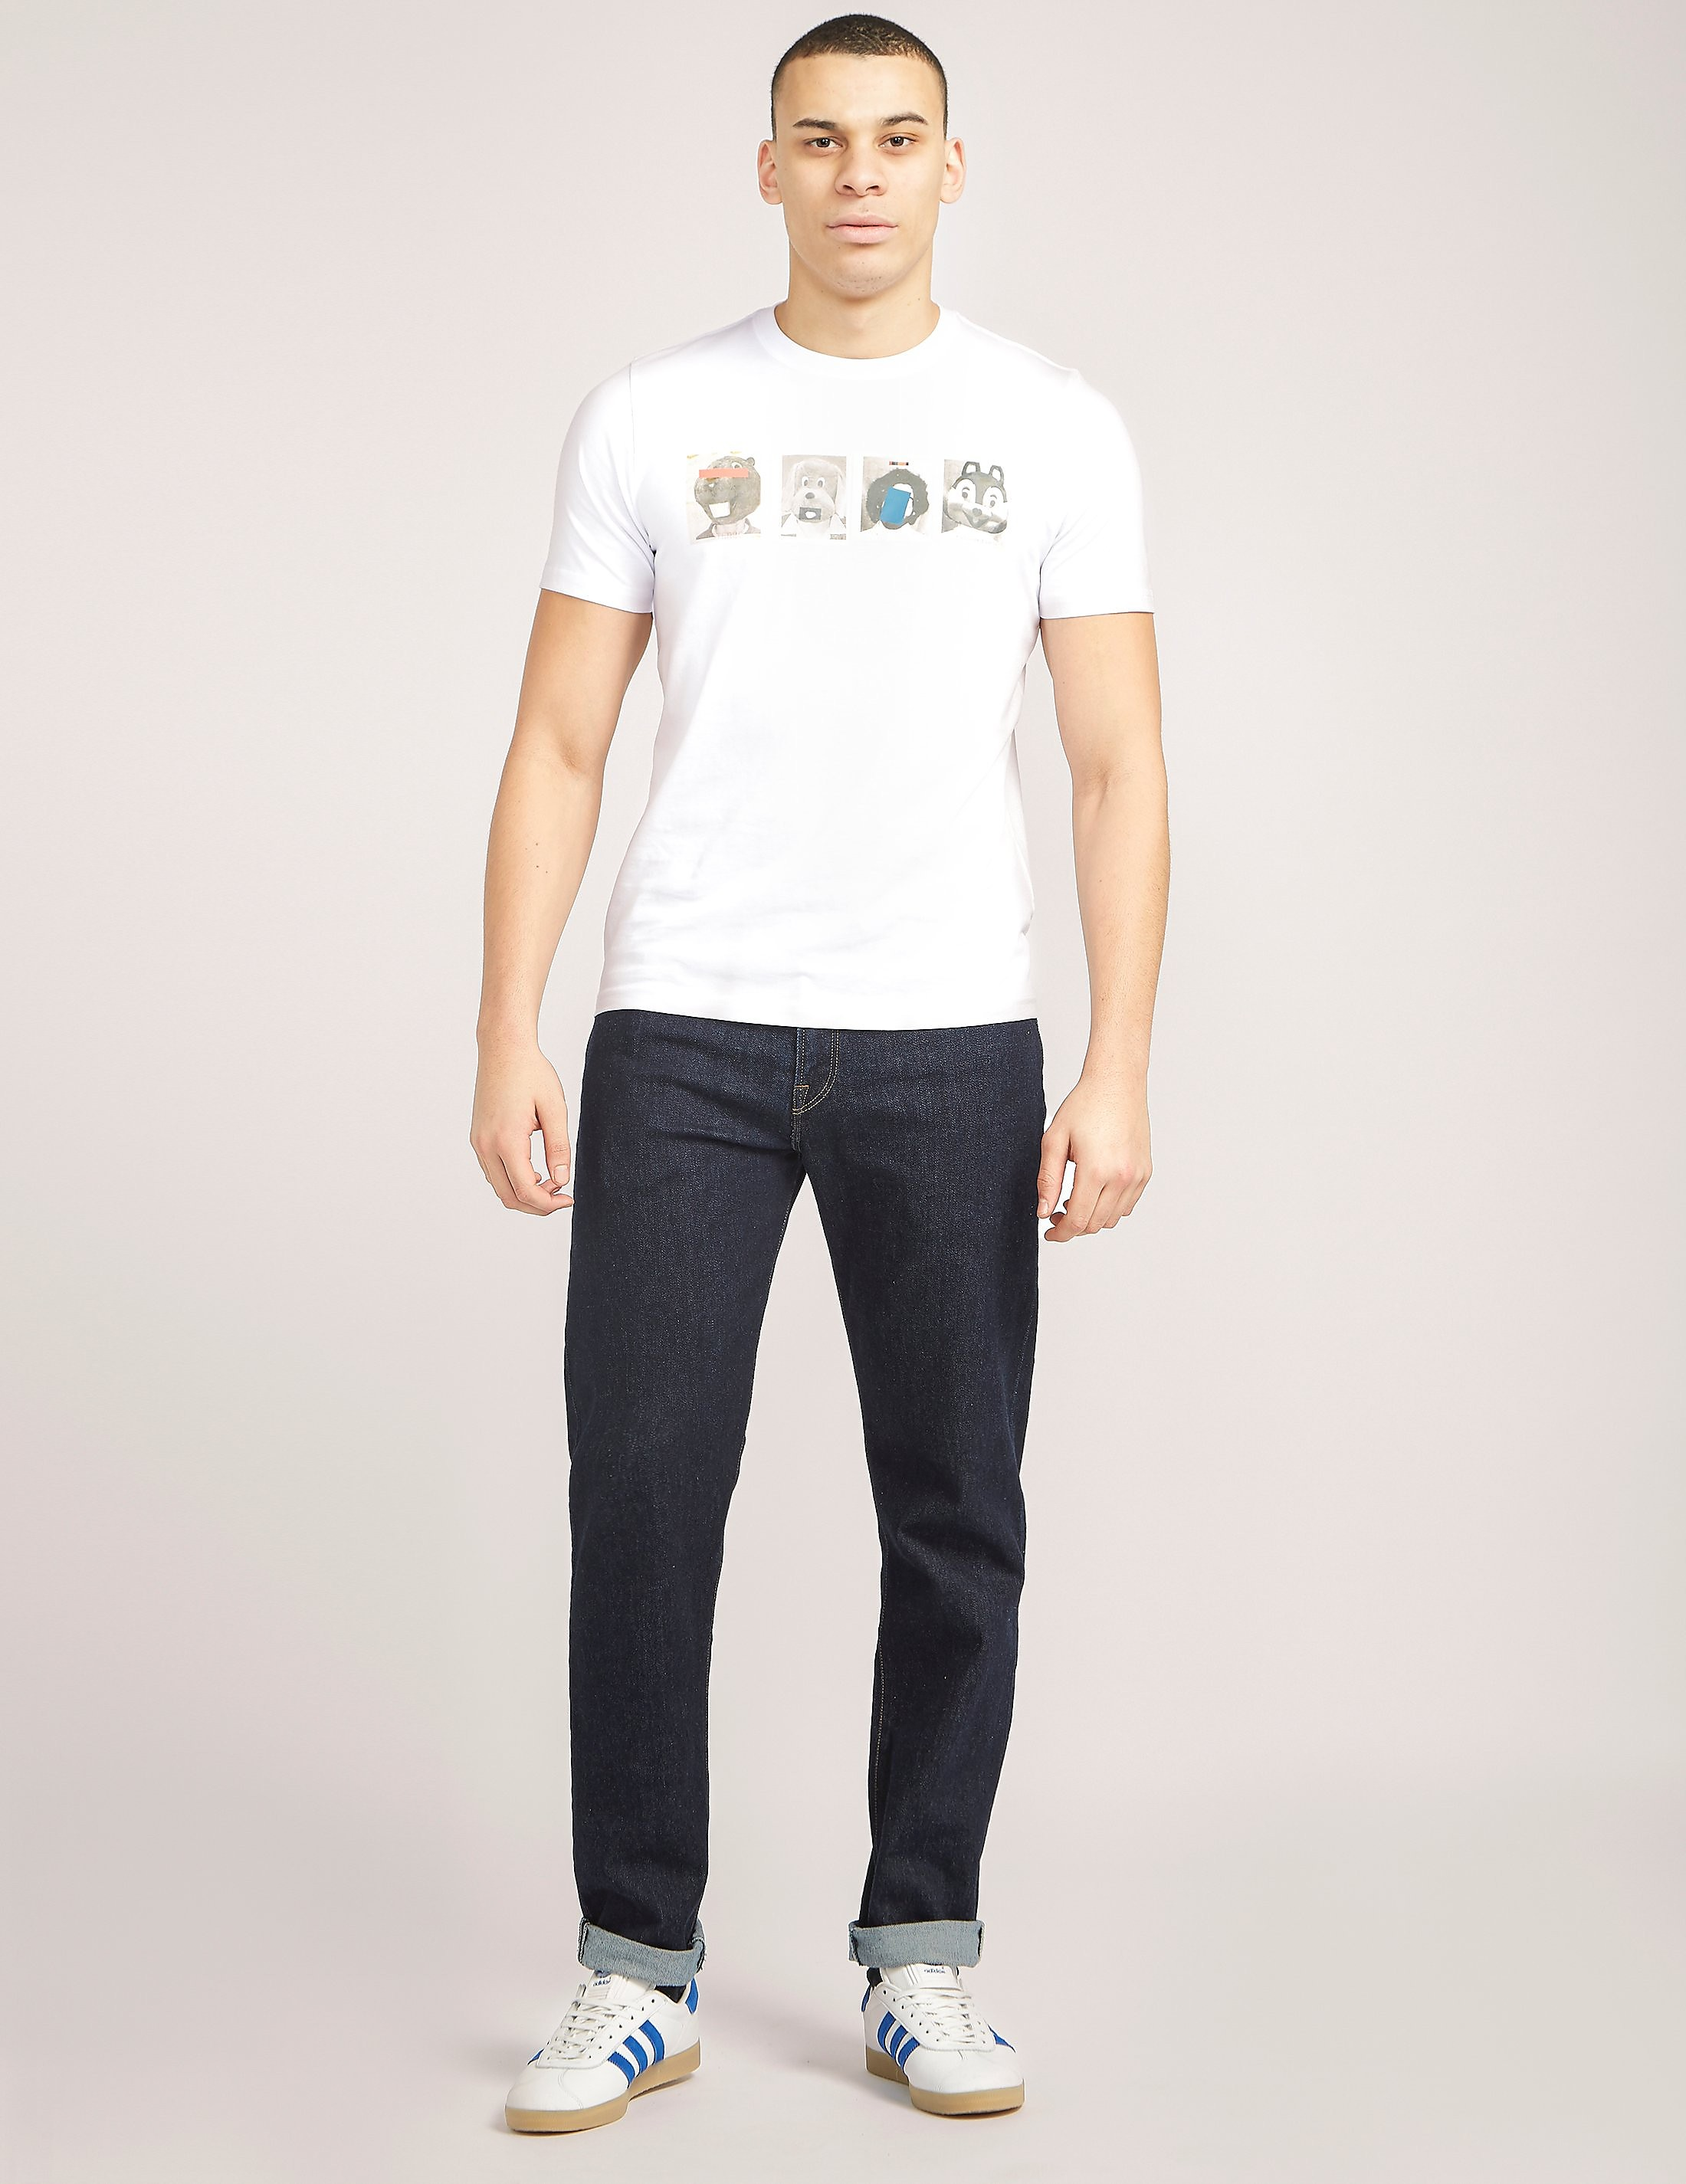 Paul Smith Mascots Print T-Shirt